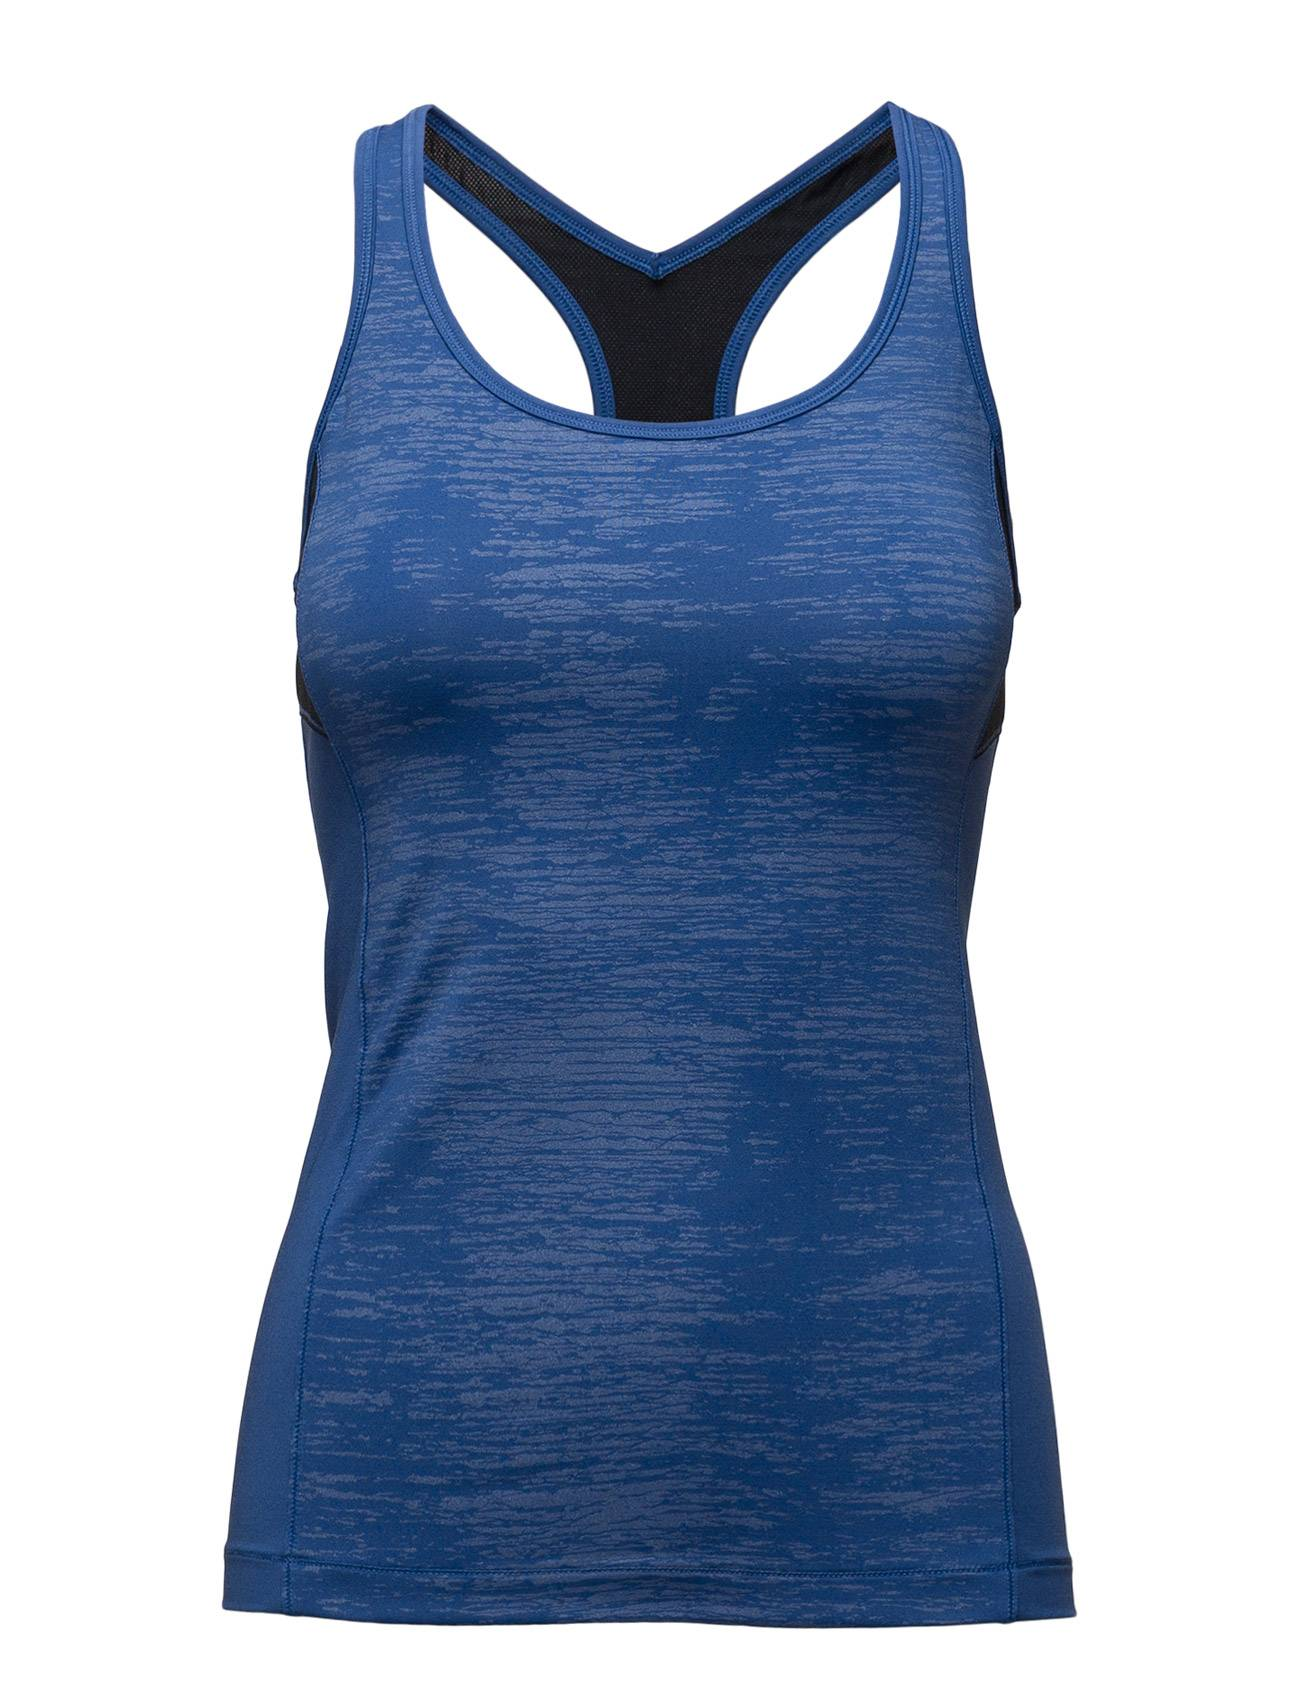 Casall Structured Racerback